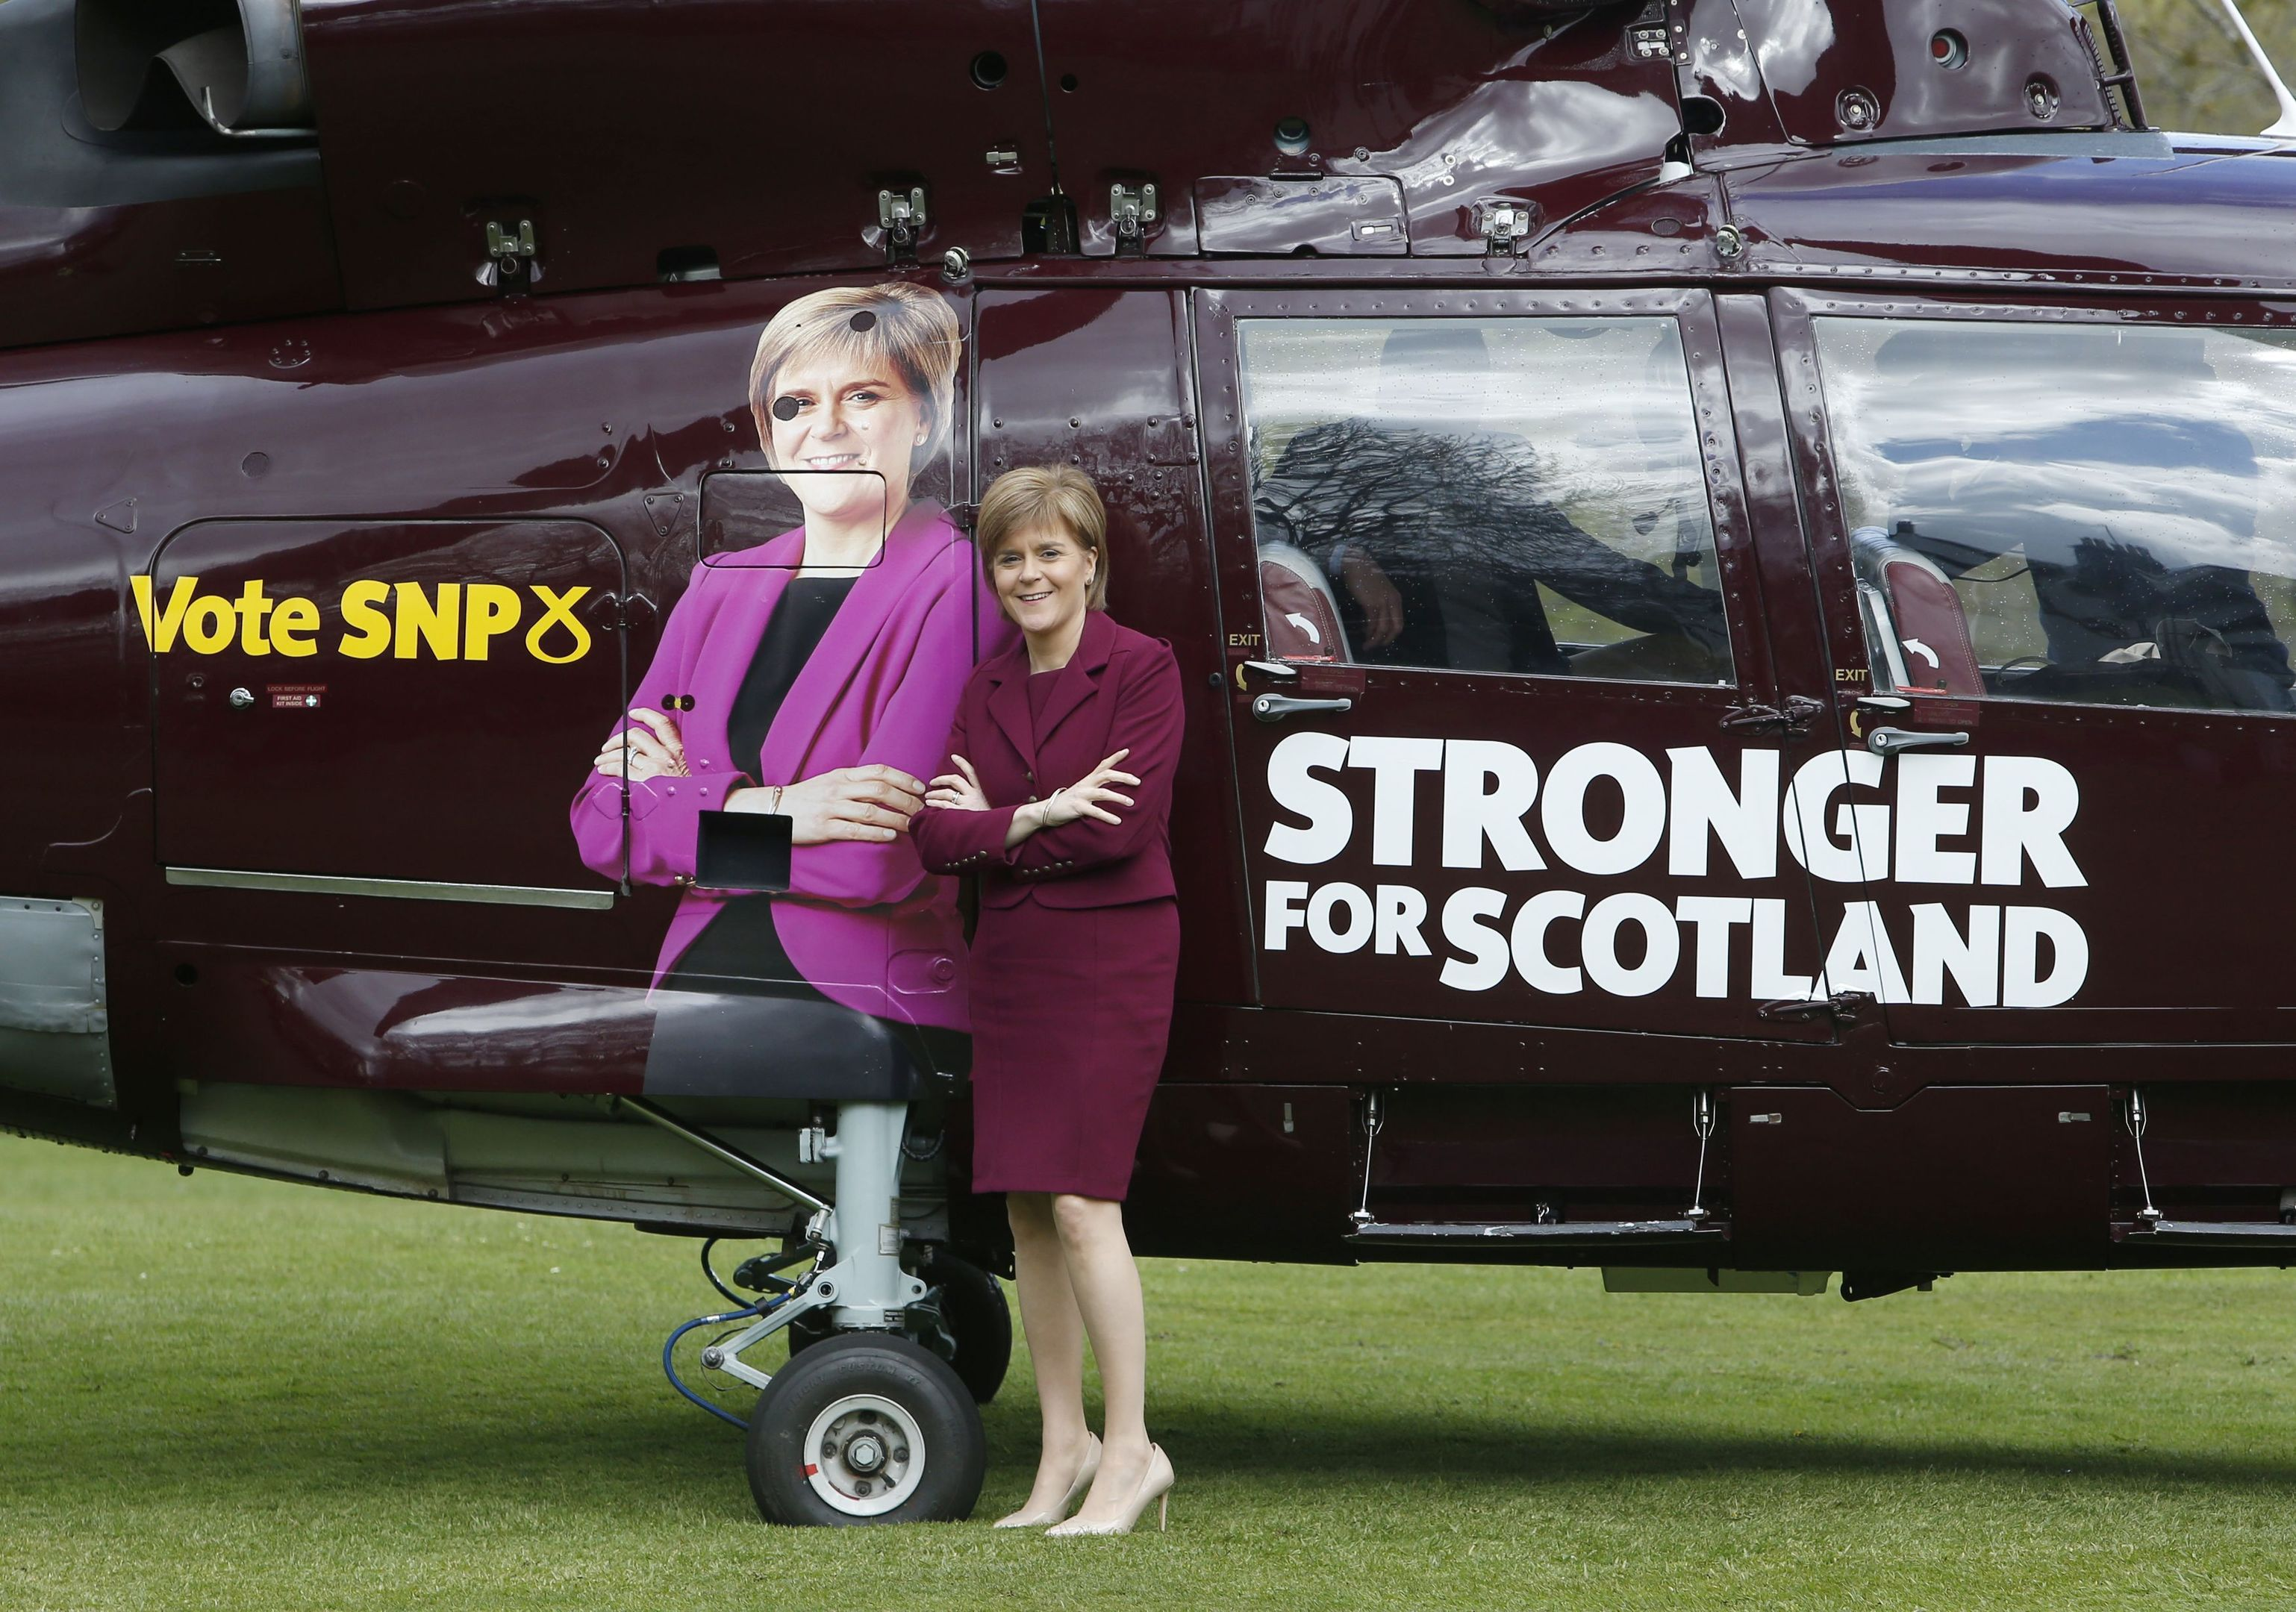 Mr Walker has raised concerns about the cost of Nicola Sturgeon using a helicopter to visit target constituencies.